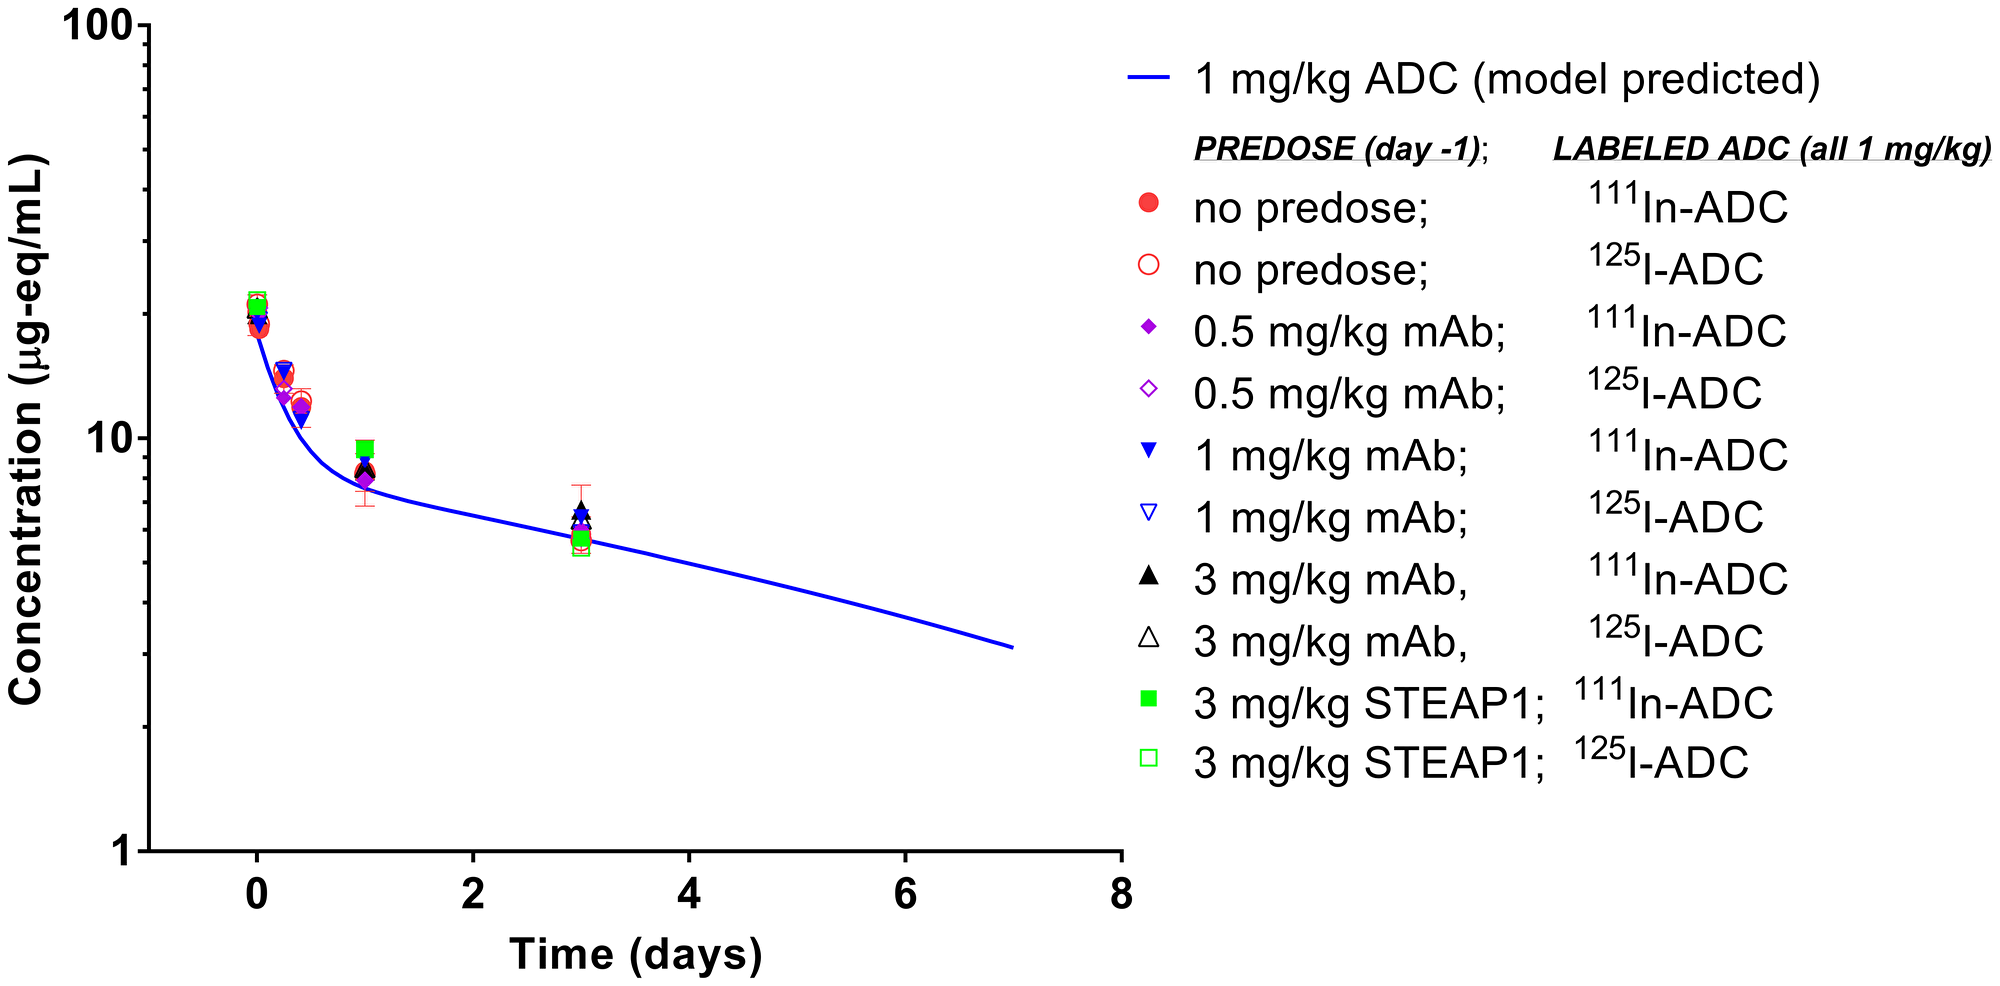 Blood pharmacokinetics of anti-TENB2 ADC (1 mg/kg) labeled with 125I and 111In in LuCaP96.1 tumor explant-bearing mice.